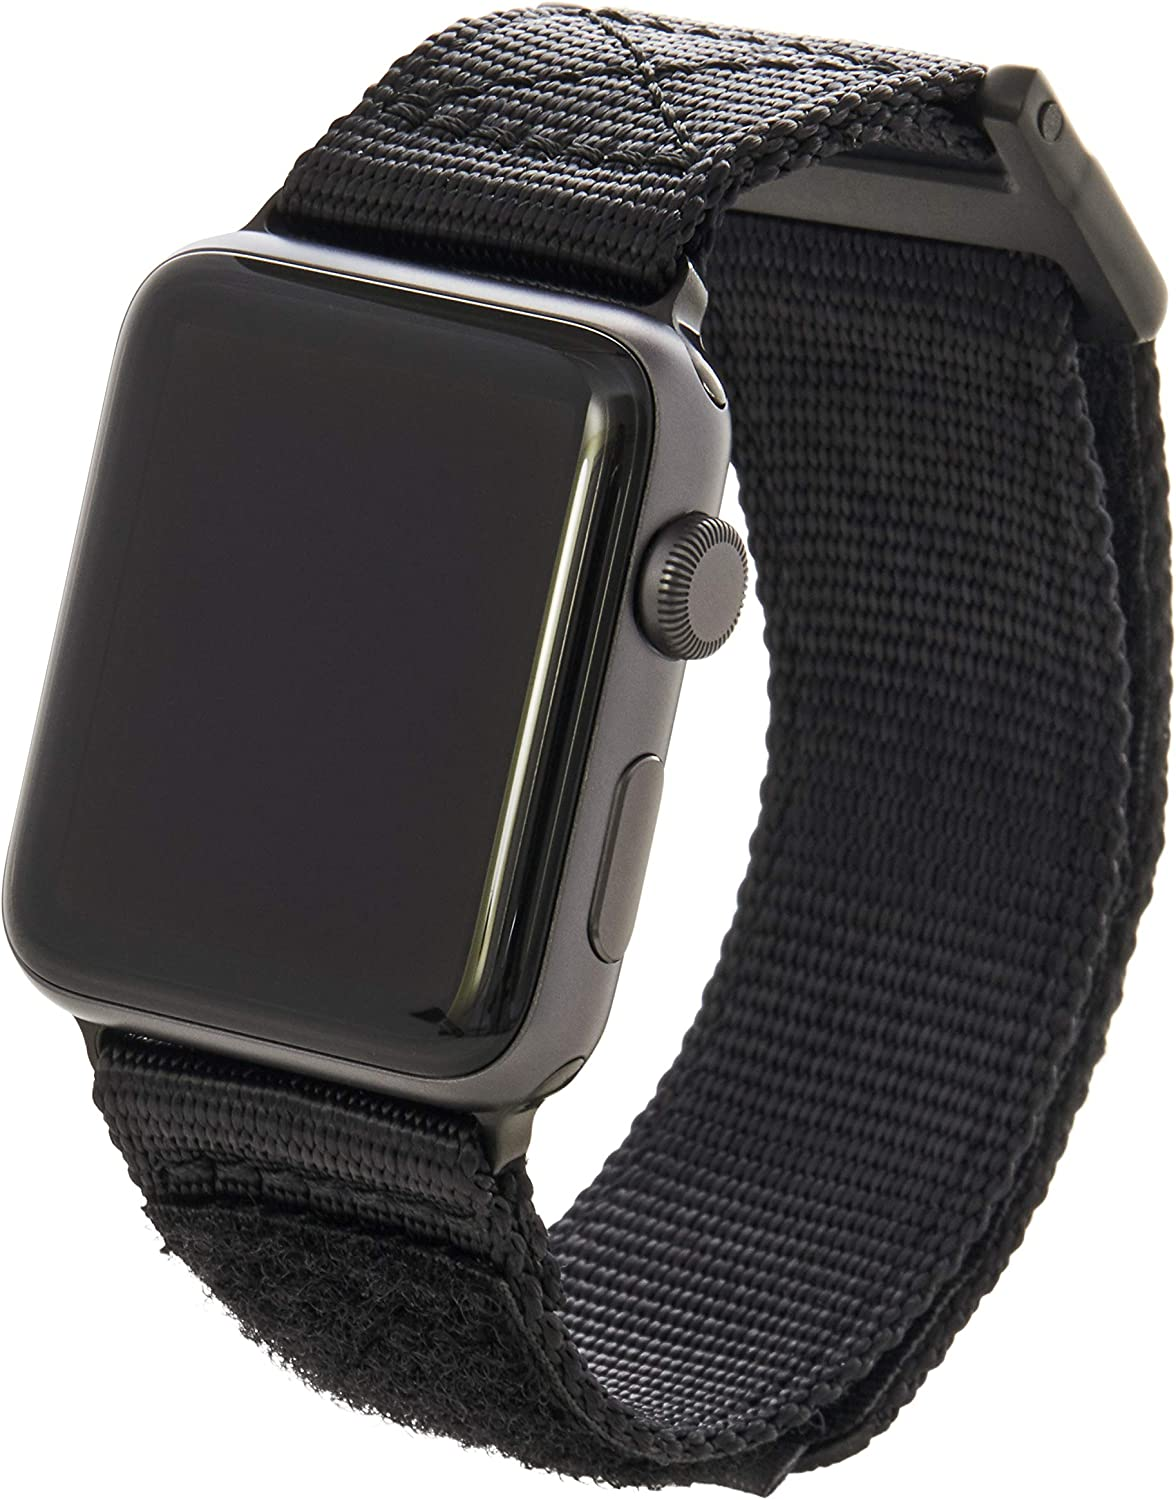 SAVIOR SURVIVAL GEAR Band Compatible with Apple Watch 44mm/42mm (iWatch Series 6/5/4/3/2/1/SE) Durable Nylon Replacement Strap